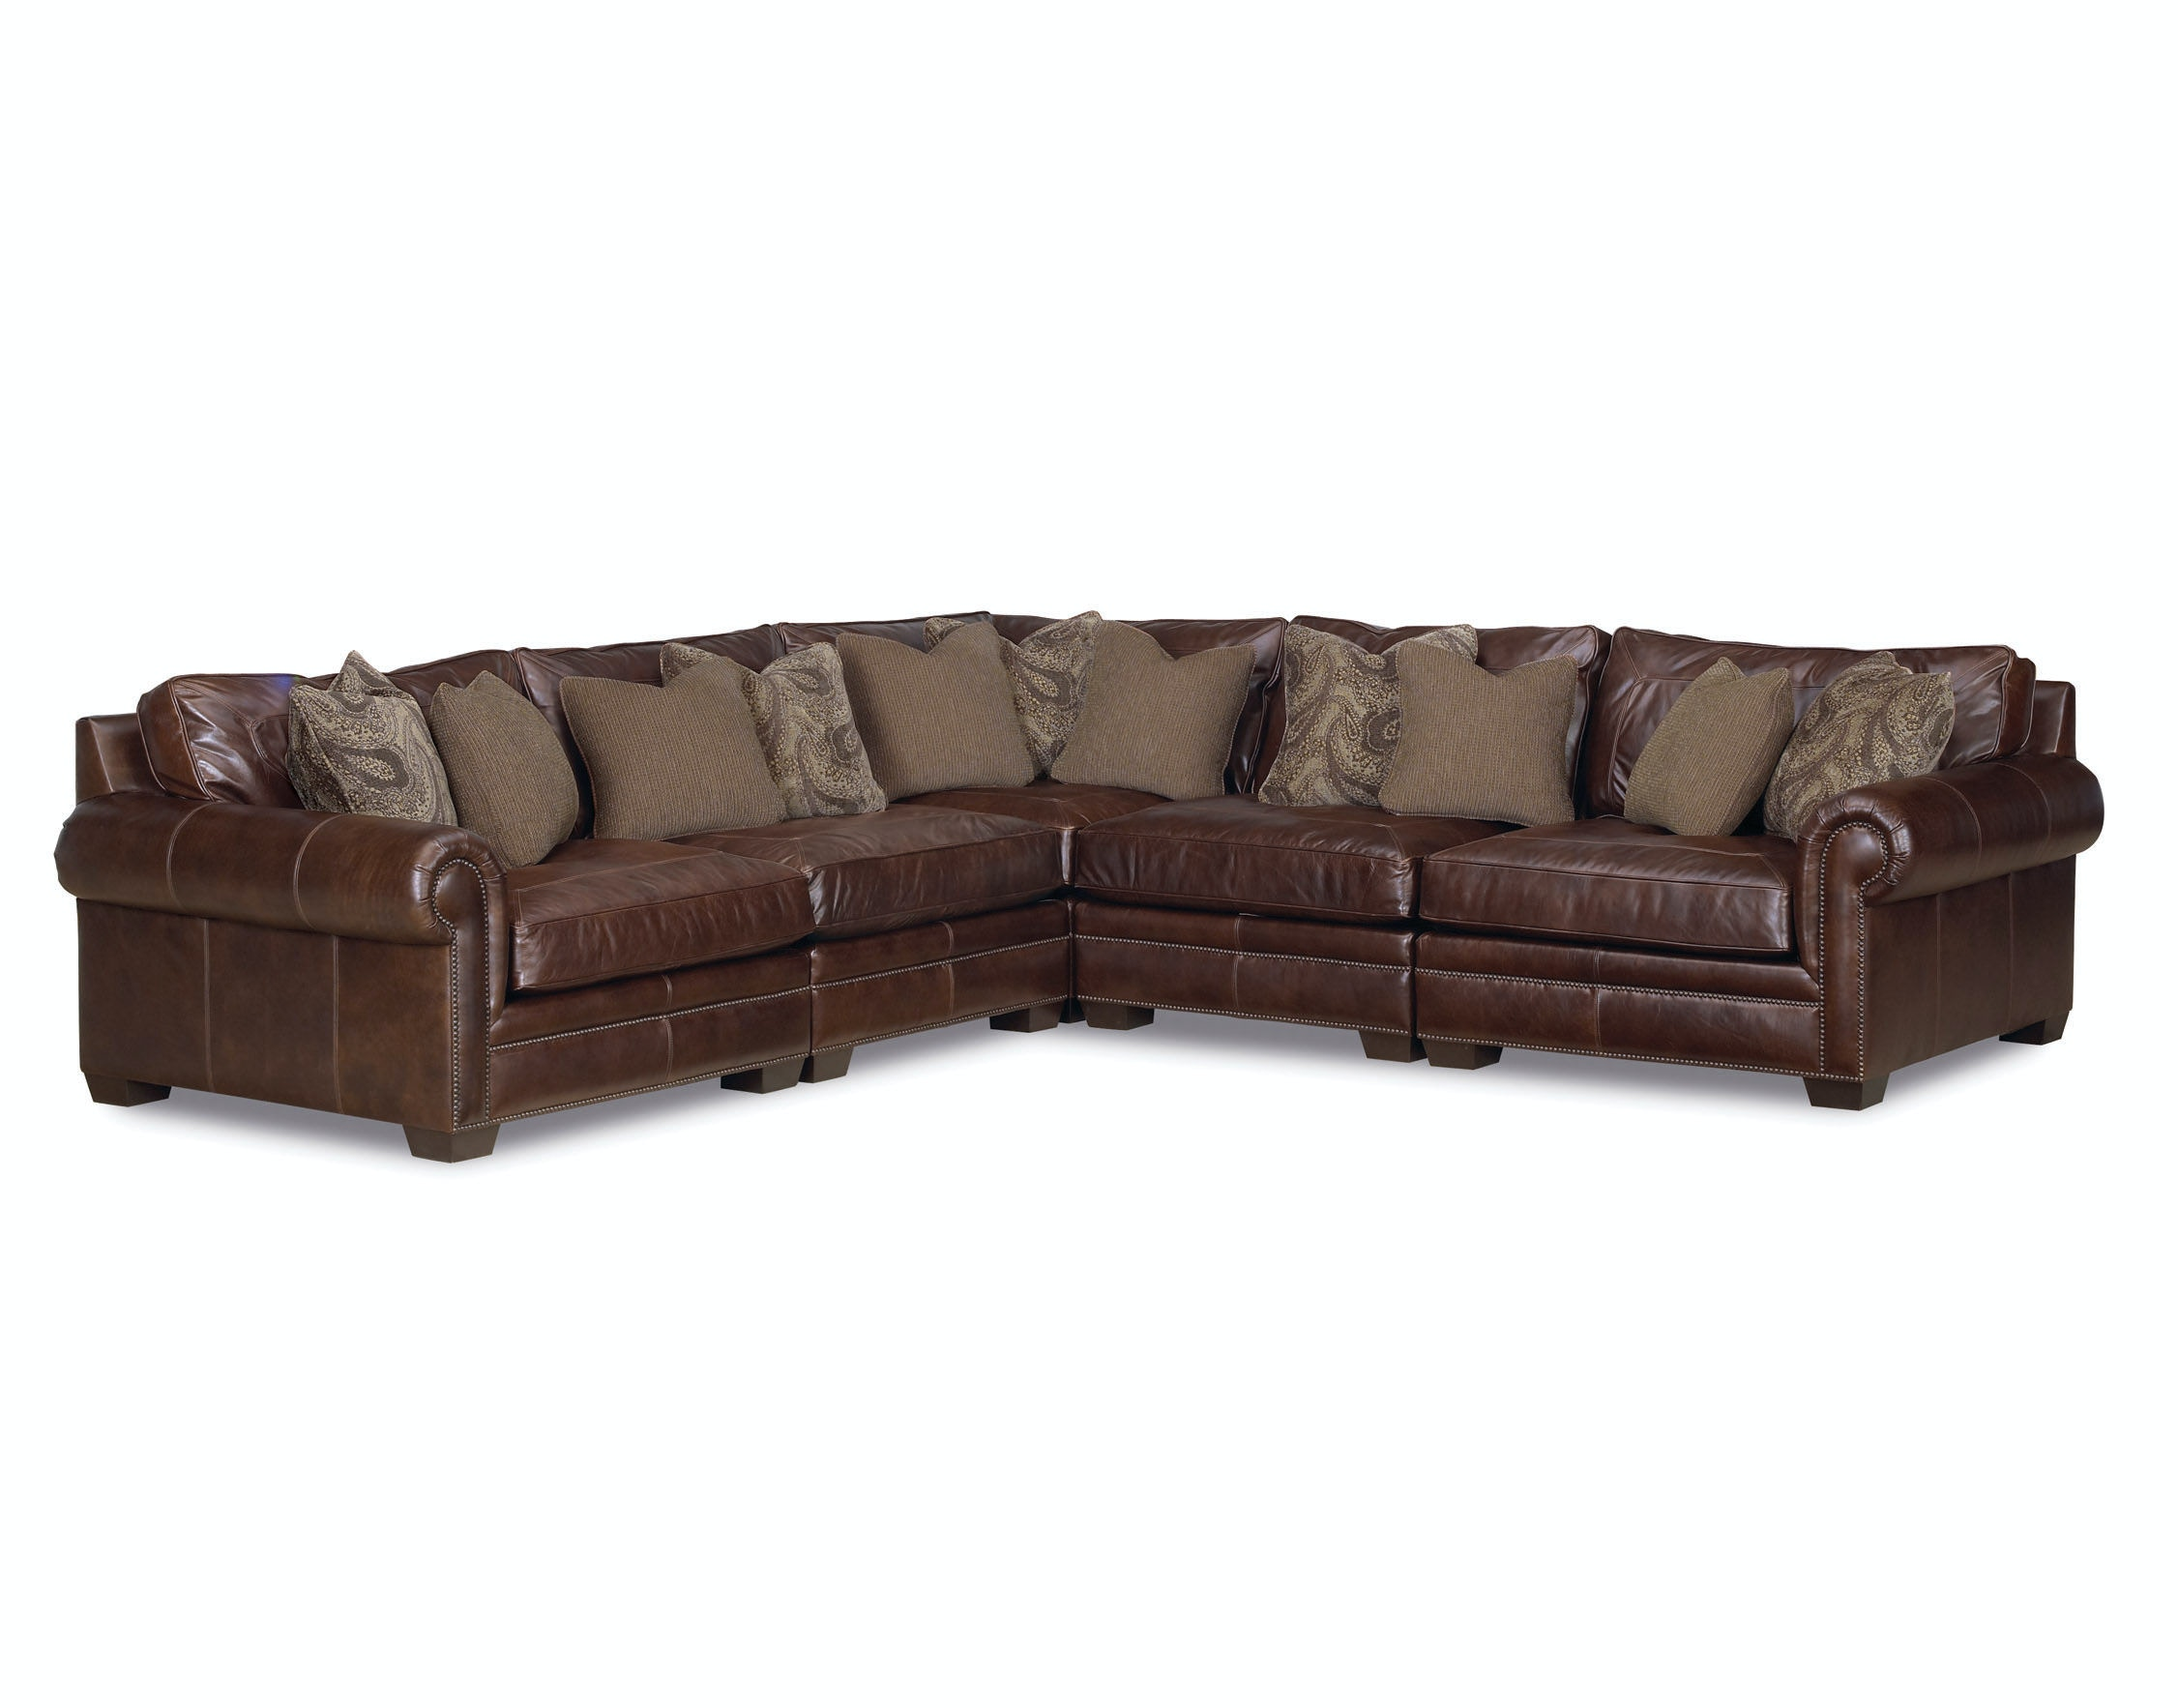 Grandview 5 Piece Leather Sectional